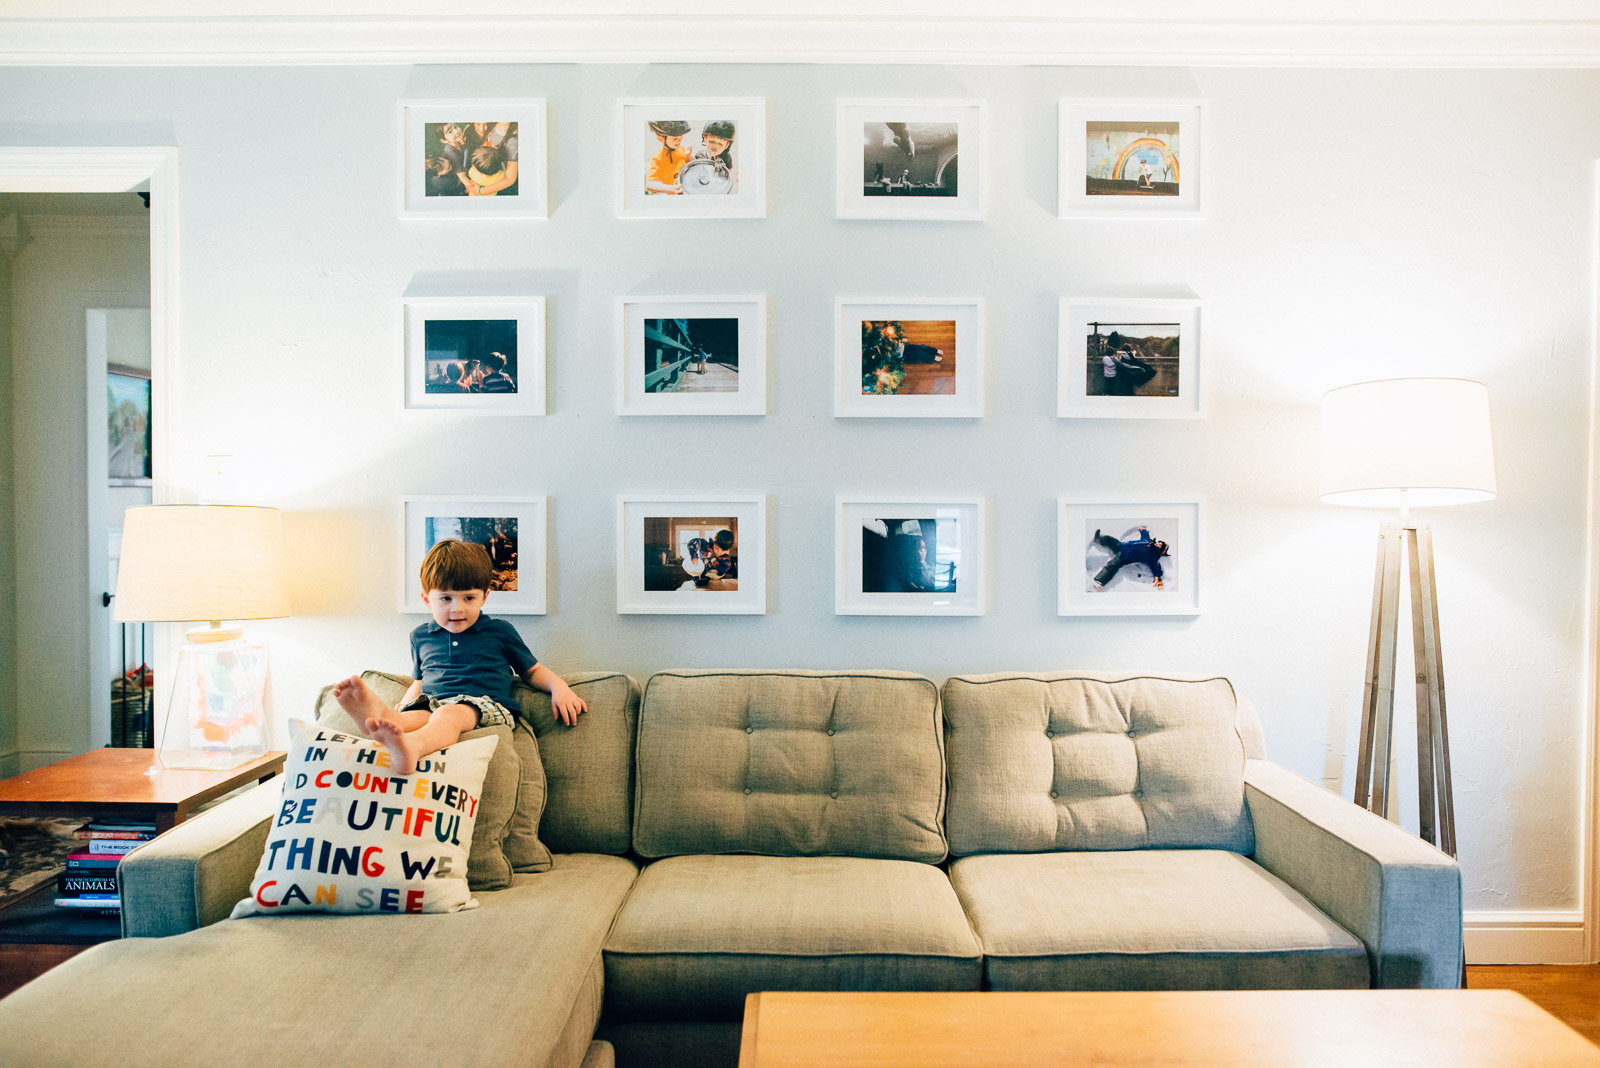 picture of a boy sitting on a couch with photos on the wall by Andrea Moffatt